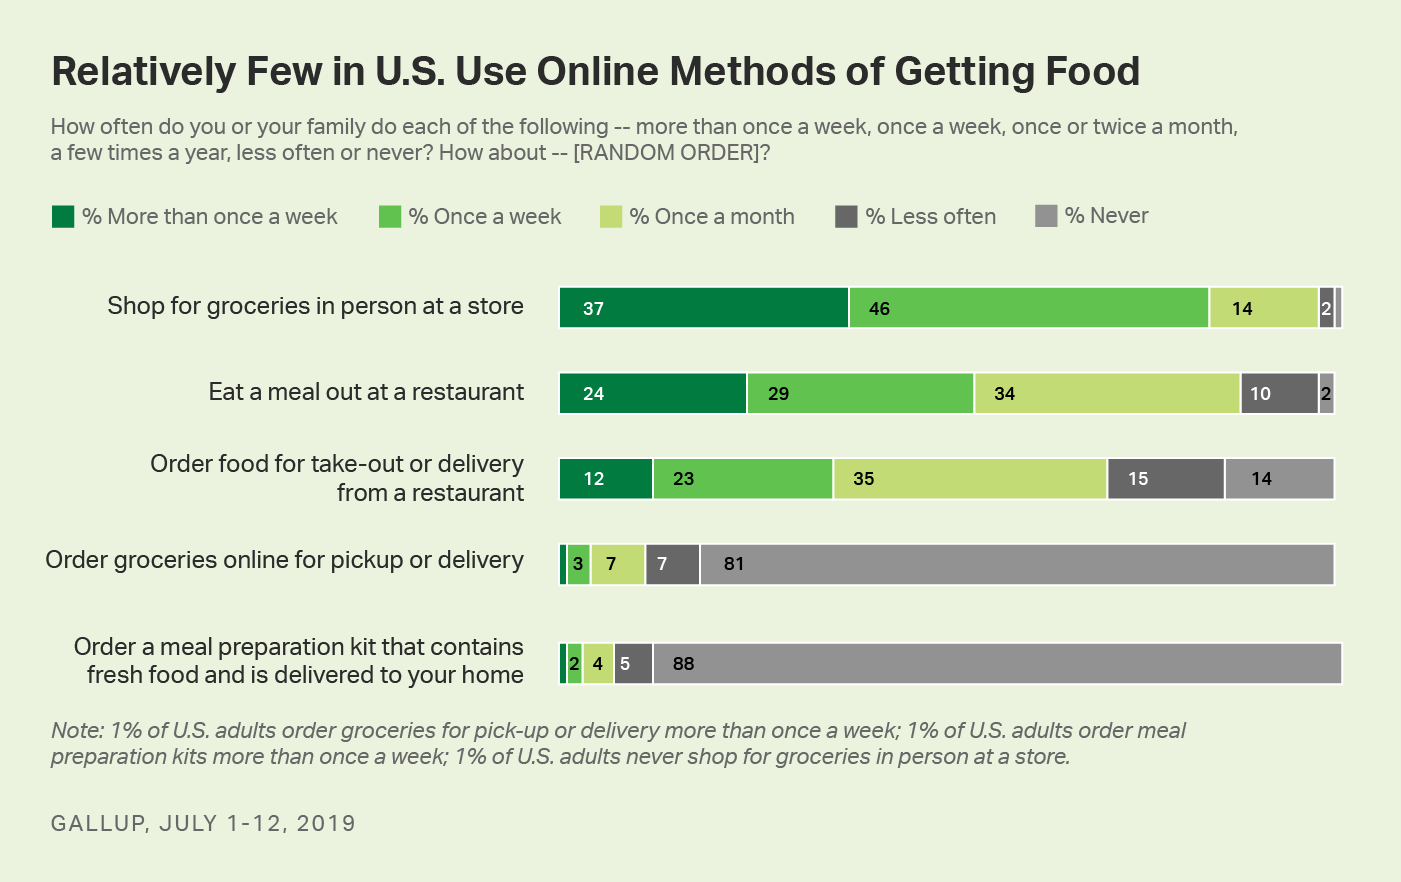 11% of U.S. adults order groceries online at least once a month; 97% shop for groceries in person at a store that often.